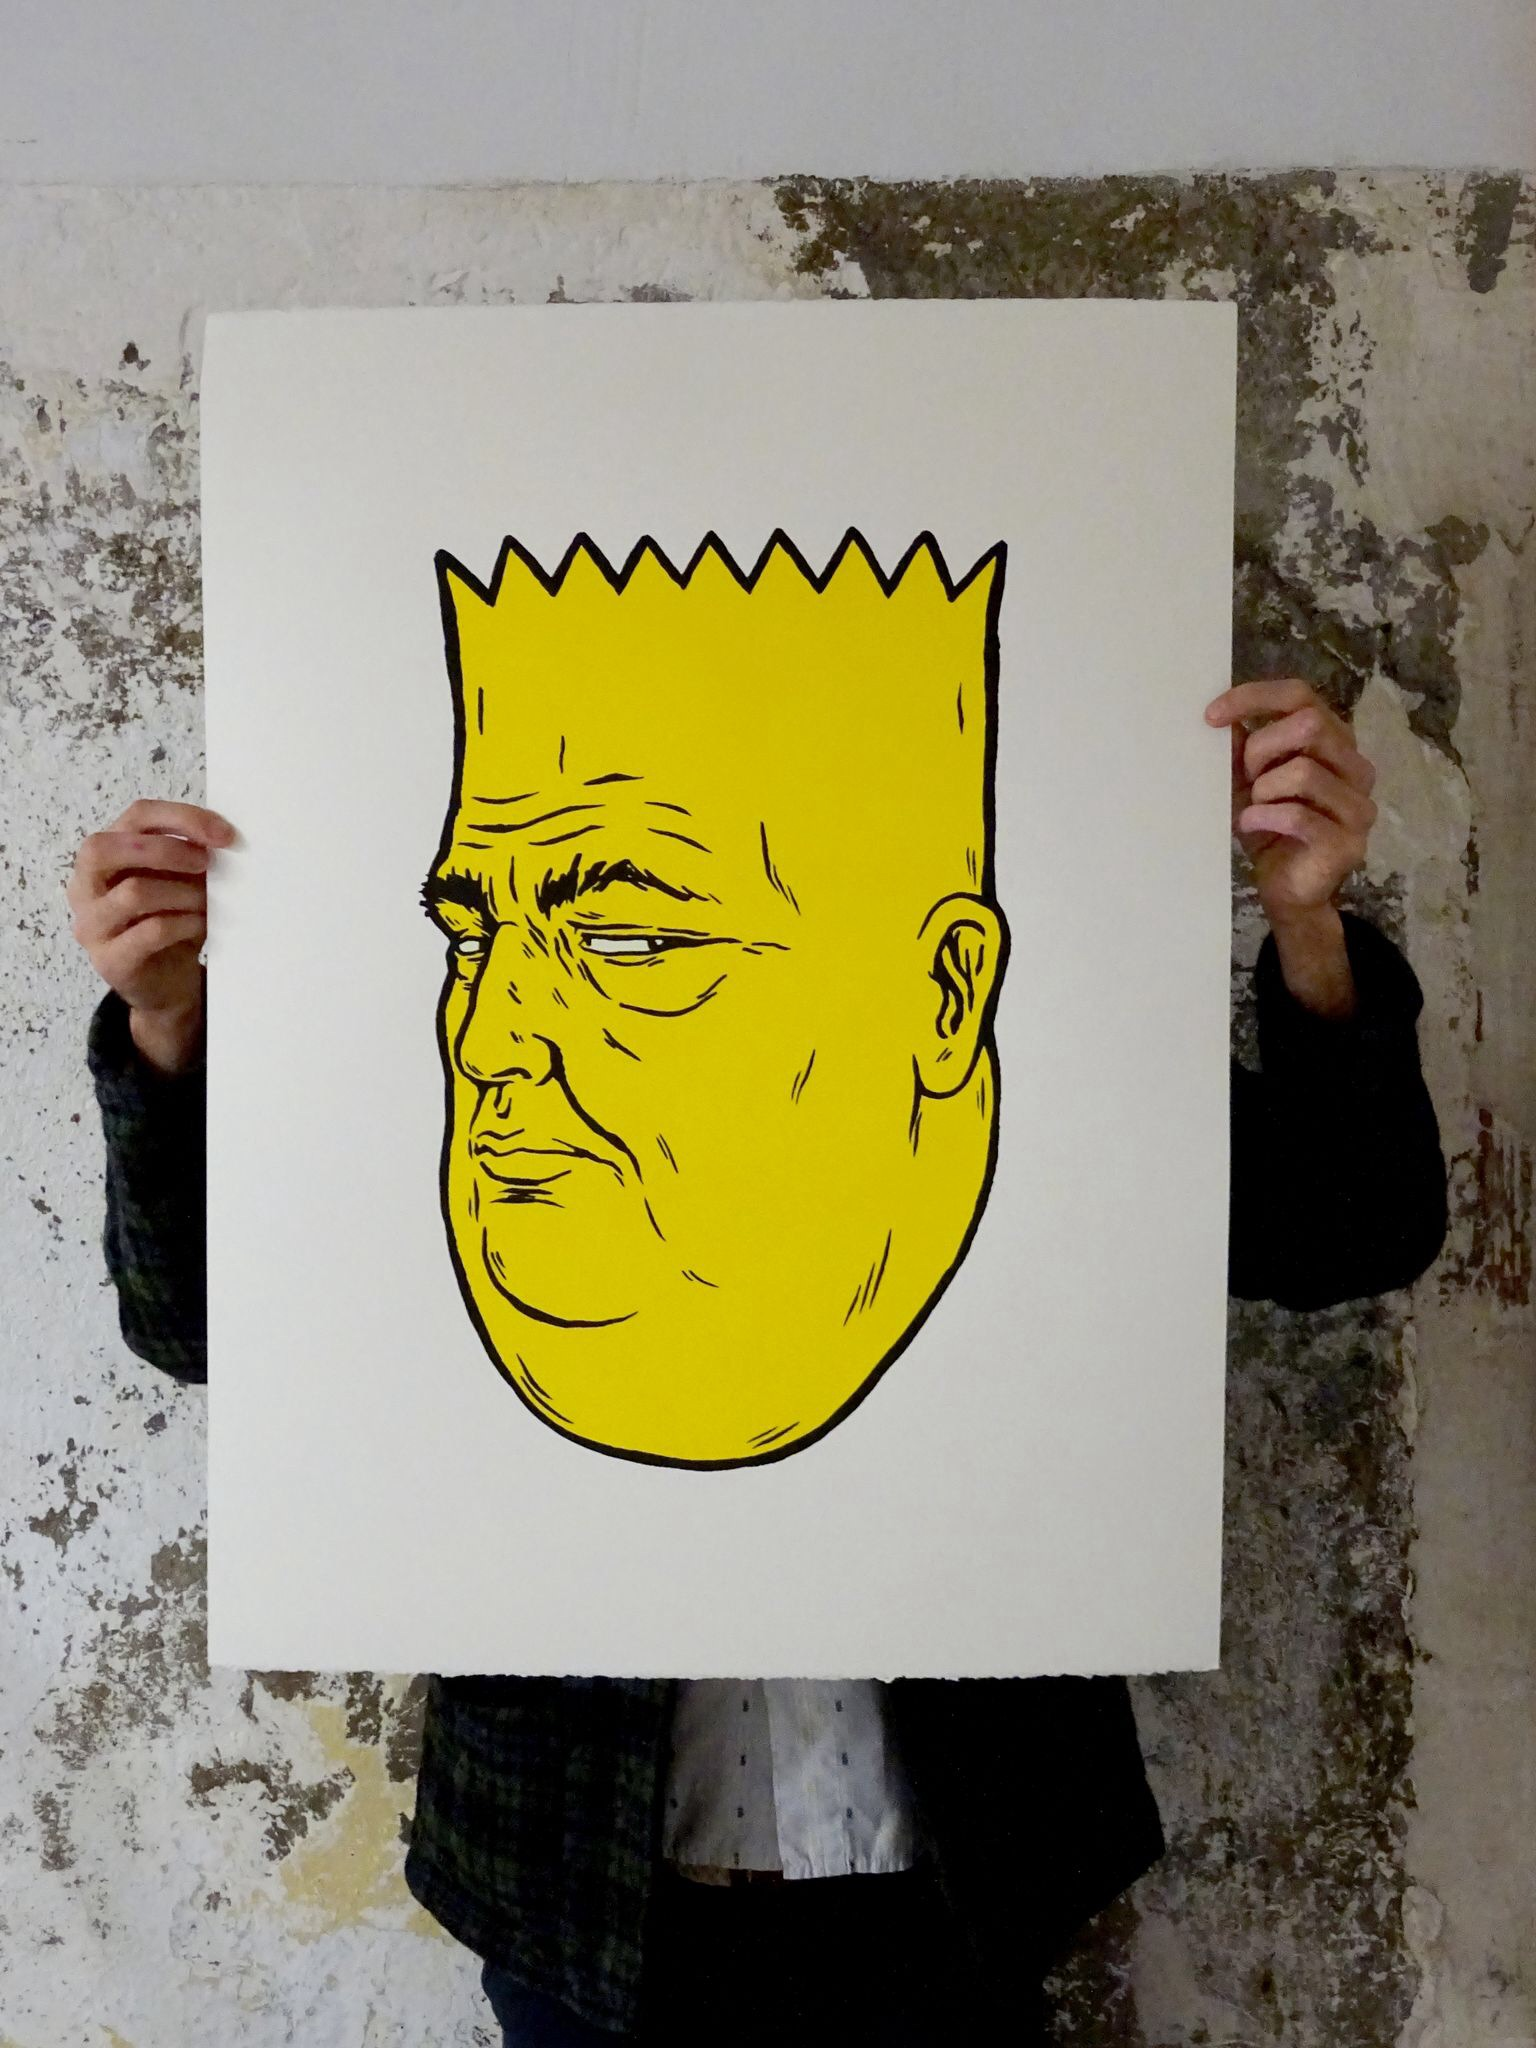 unga broken fingaz fat bart simpson print